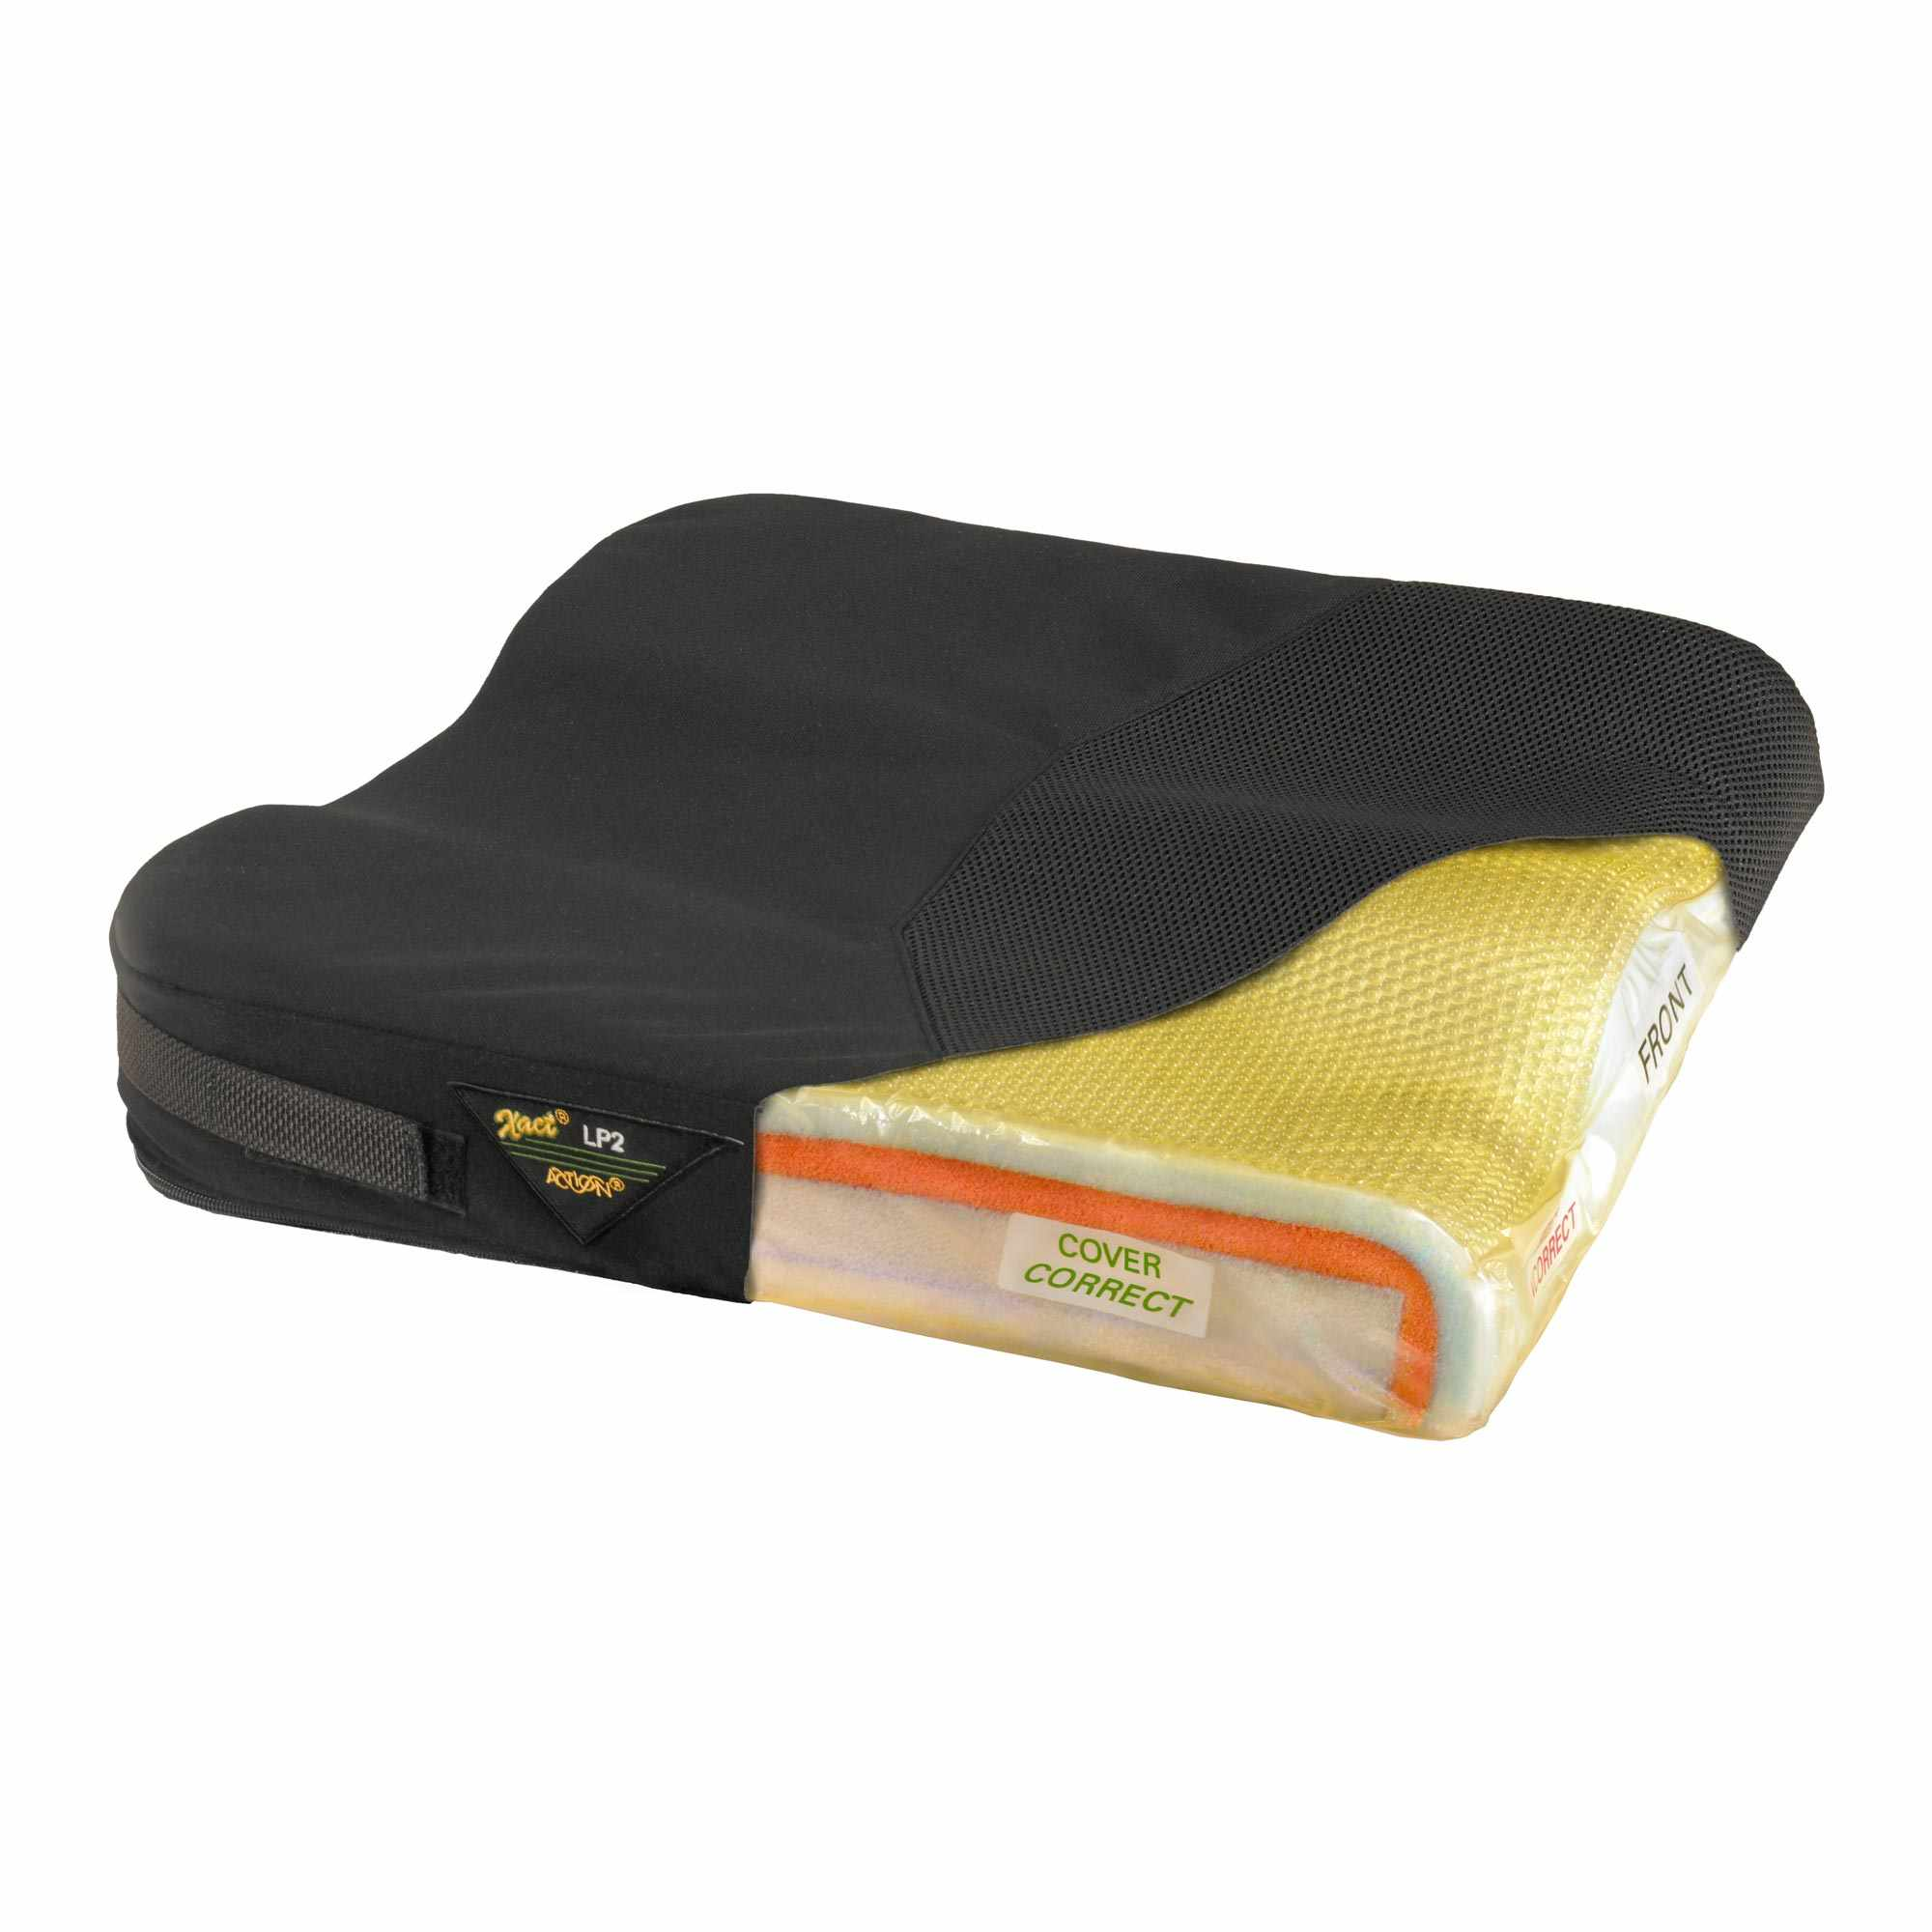 Action Products Xact LP2 Cushion with cover